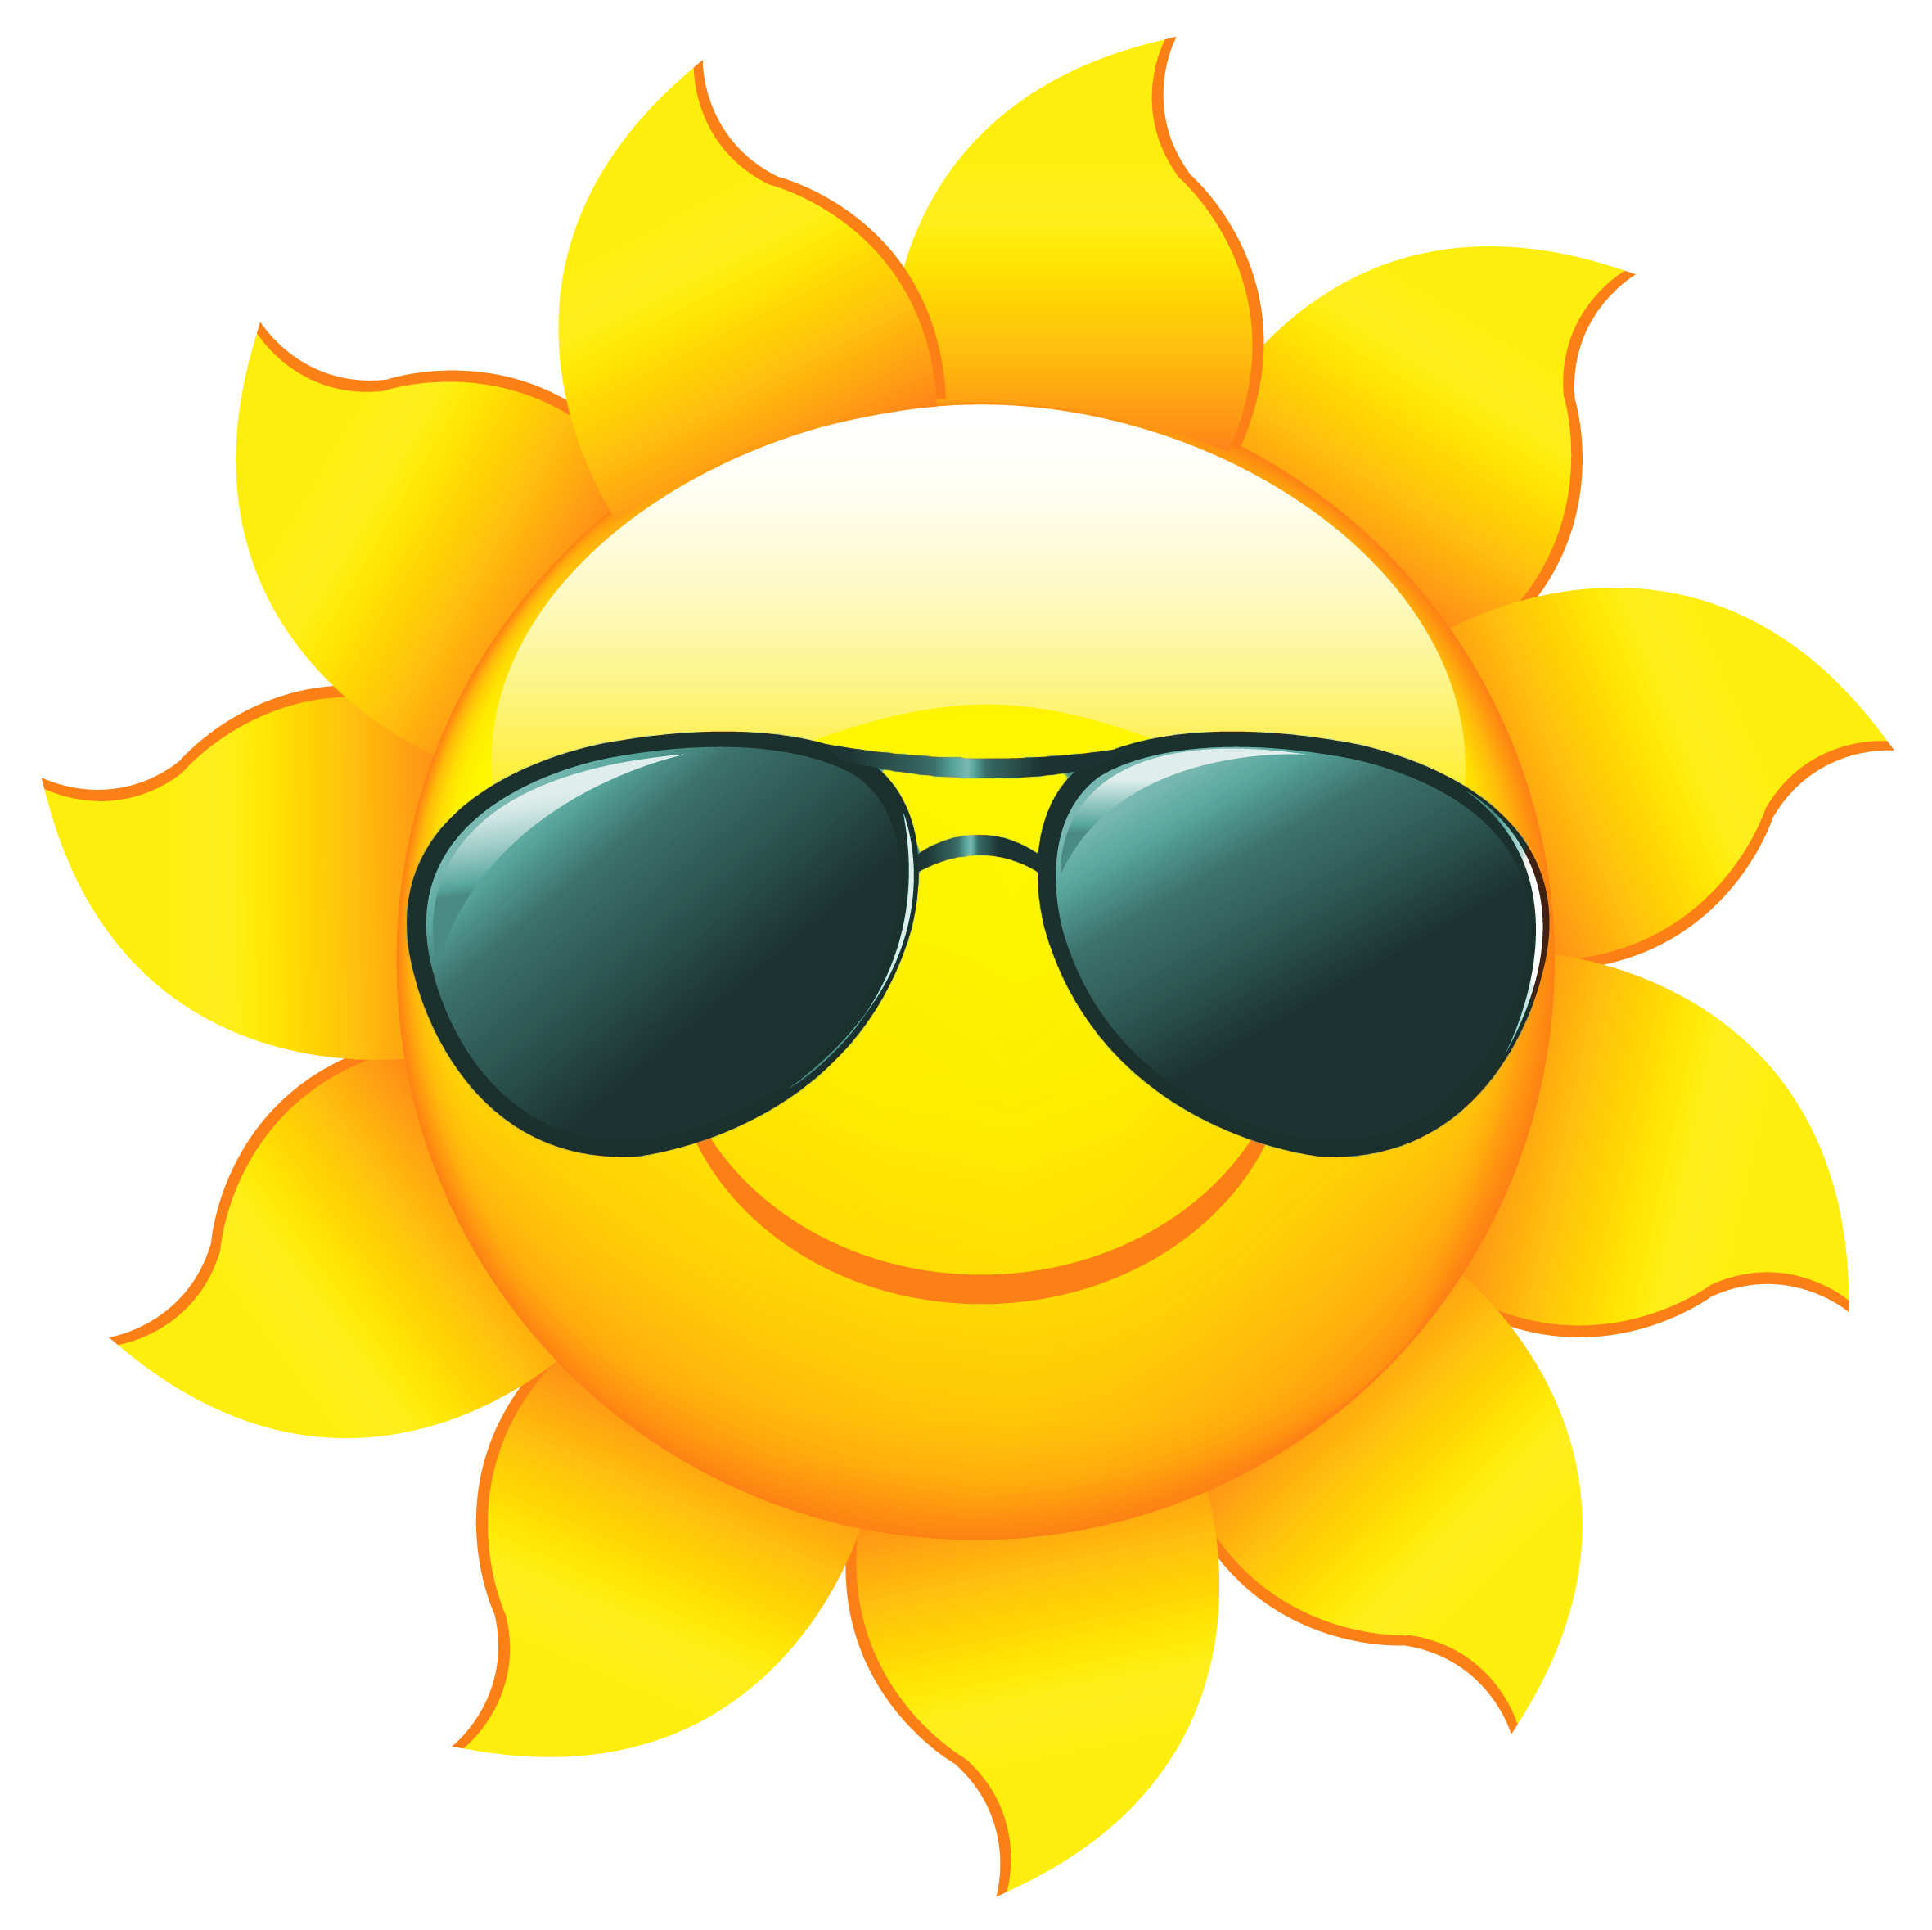 Sunshine clipart #2, Download drawings